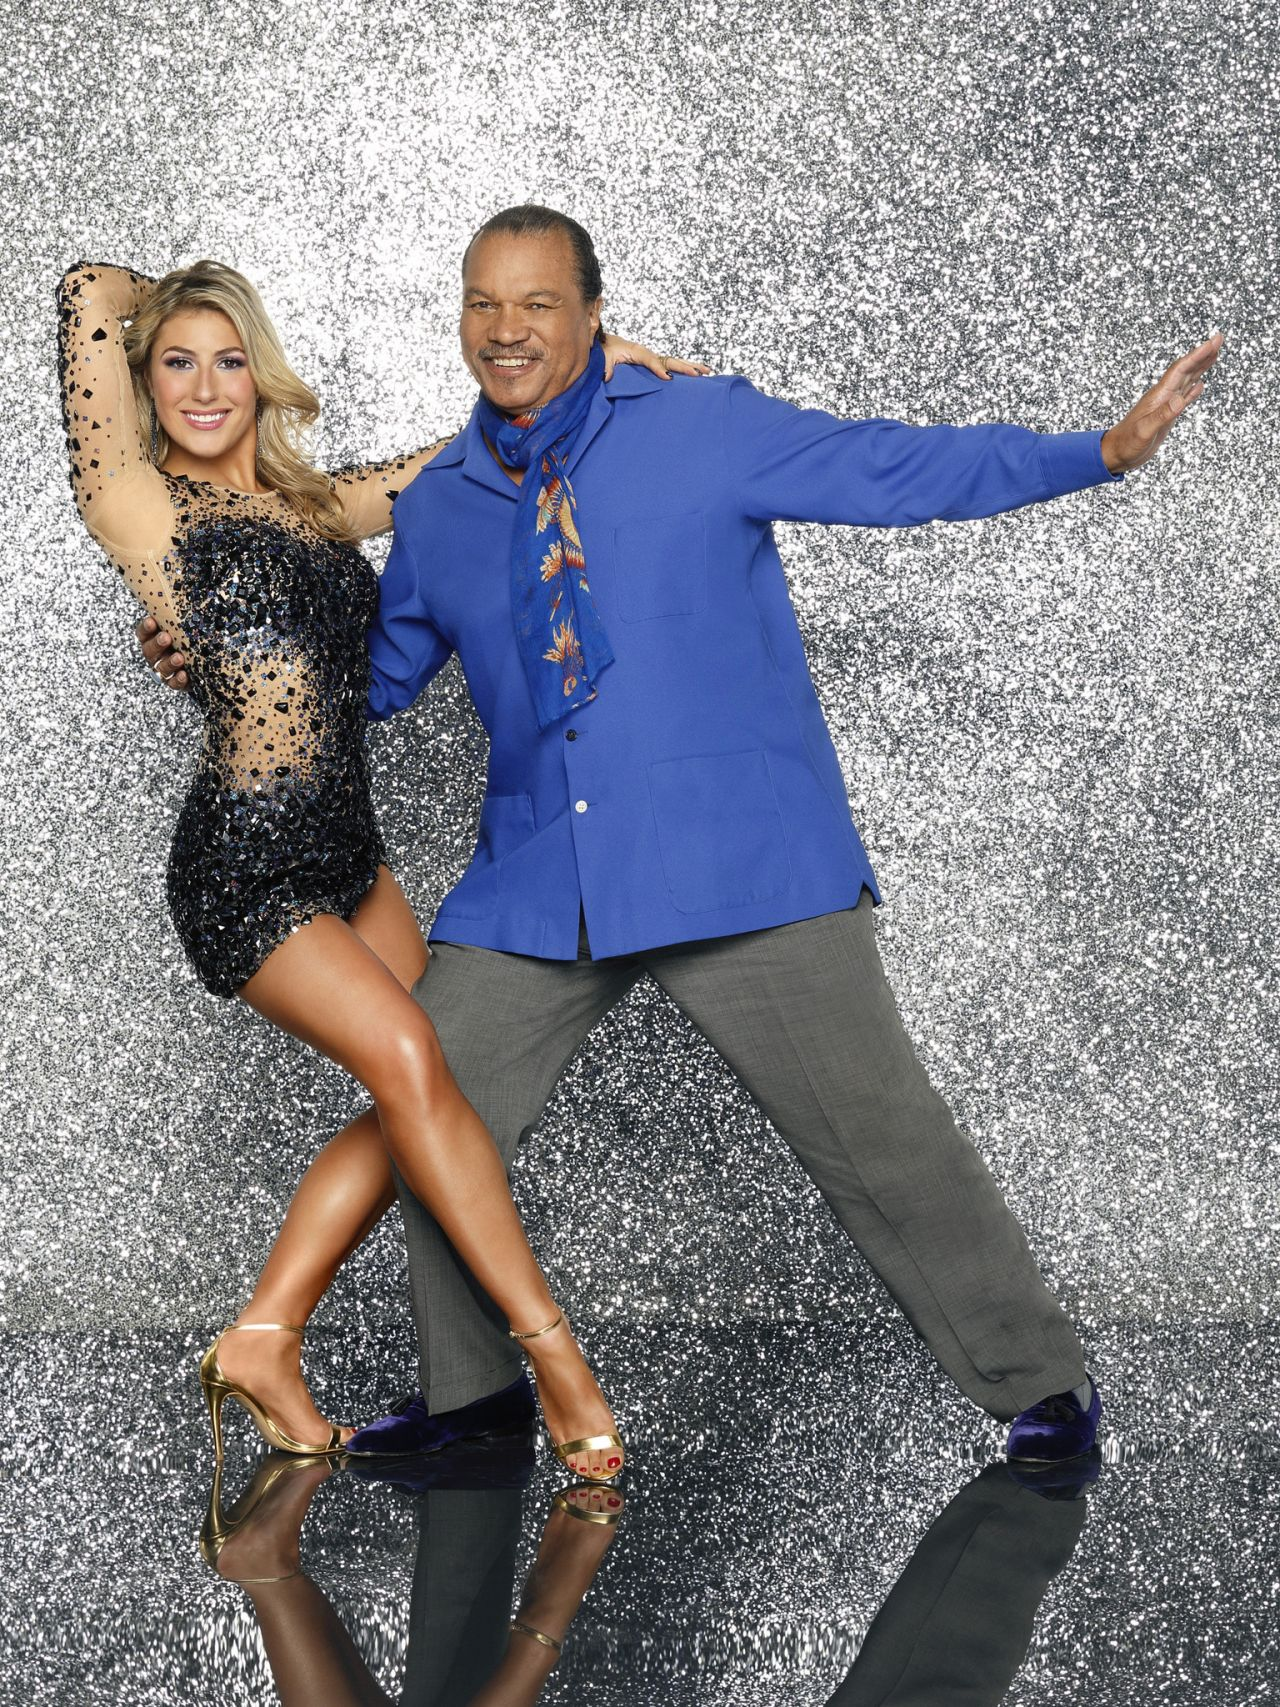 Emma Slater & Billy Dee Williams - Dancing with the Stars – Season 18 – Promo Photo